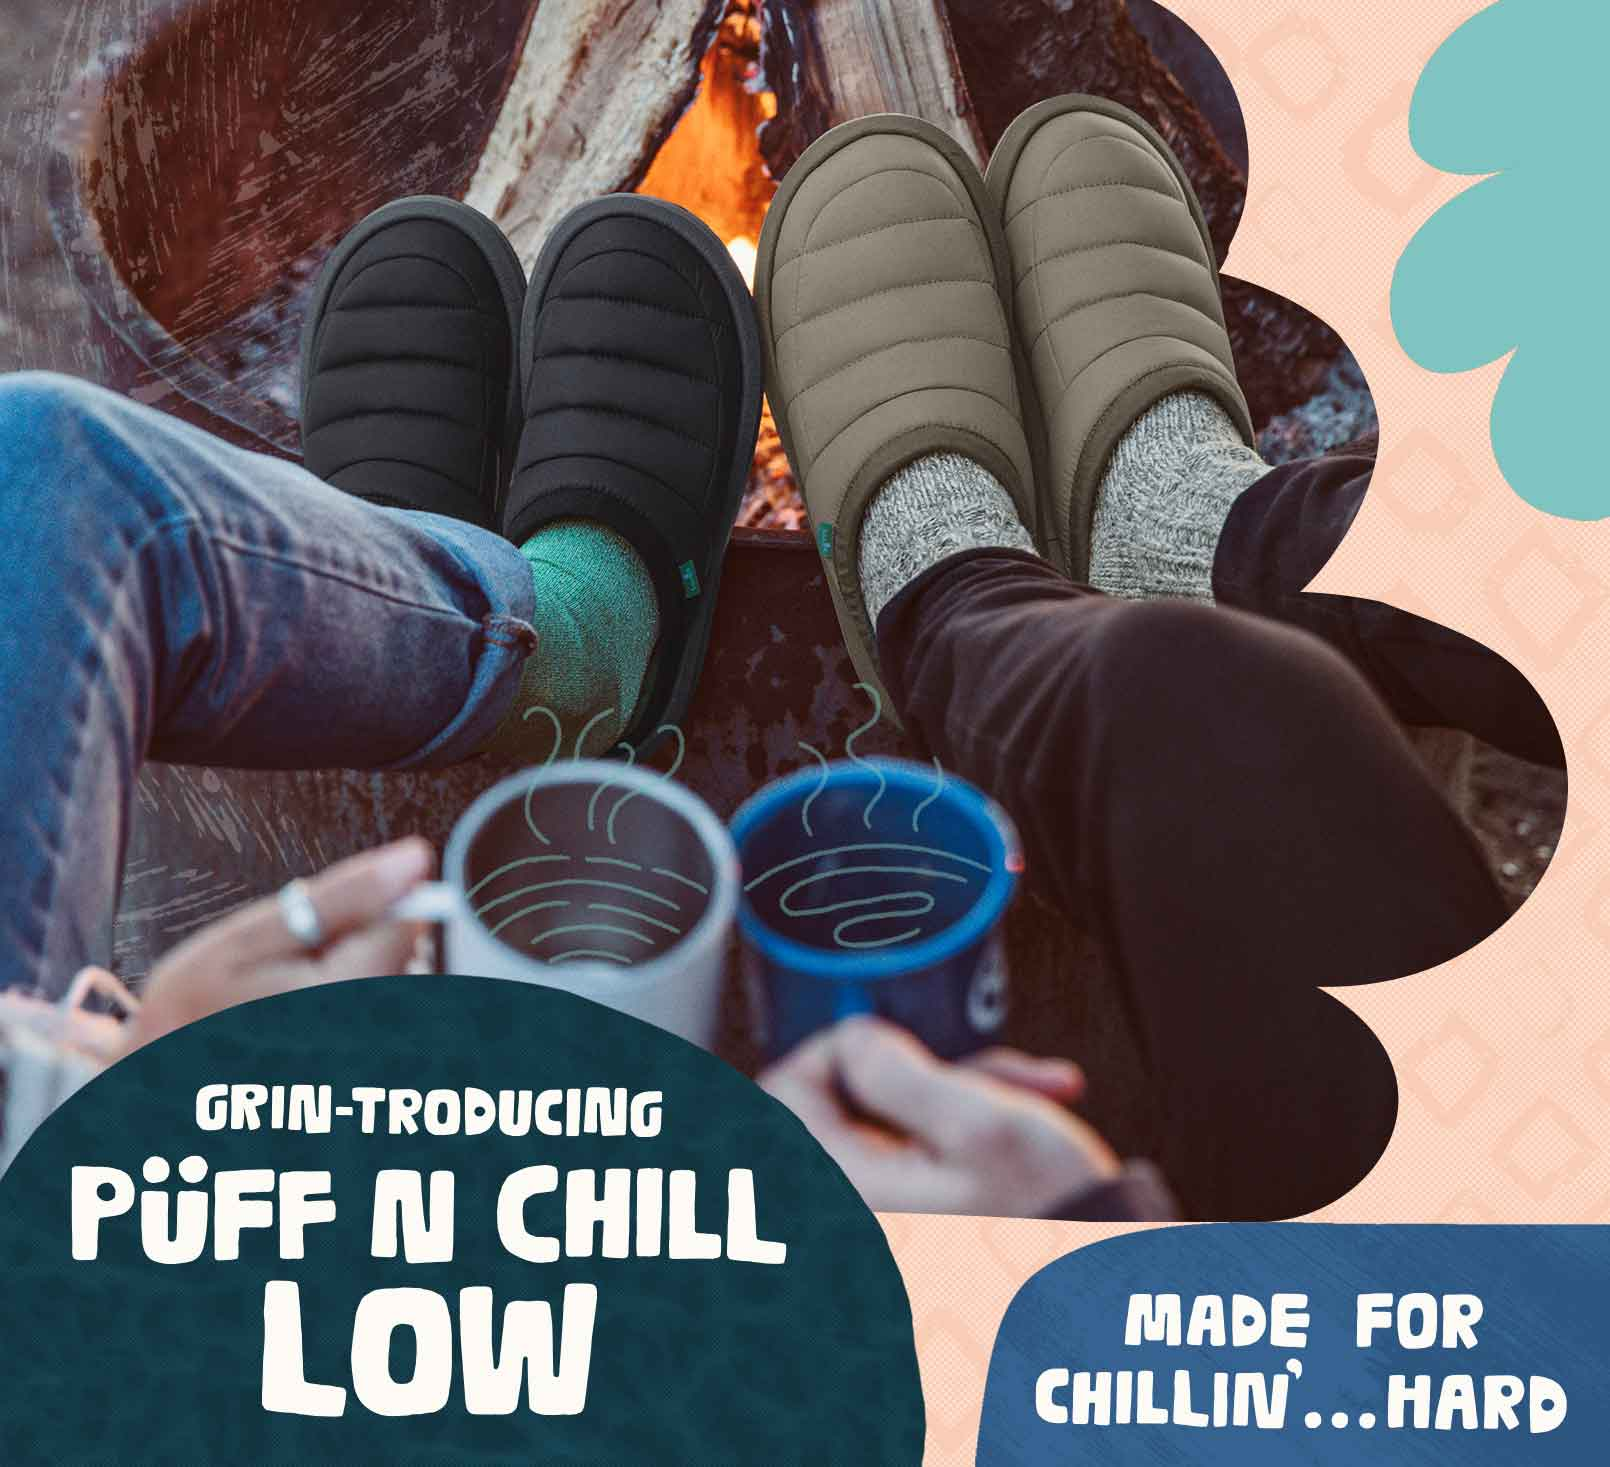 Two people roasting their Puff N Chill's by a fire